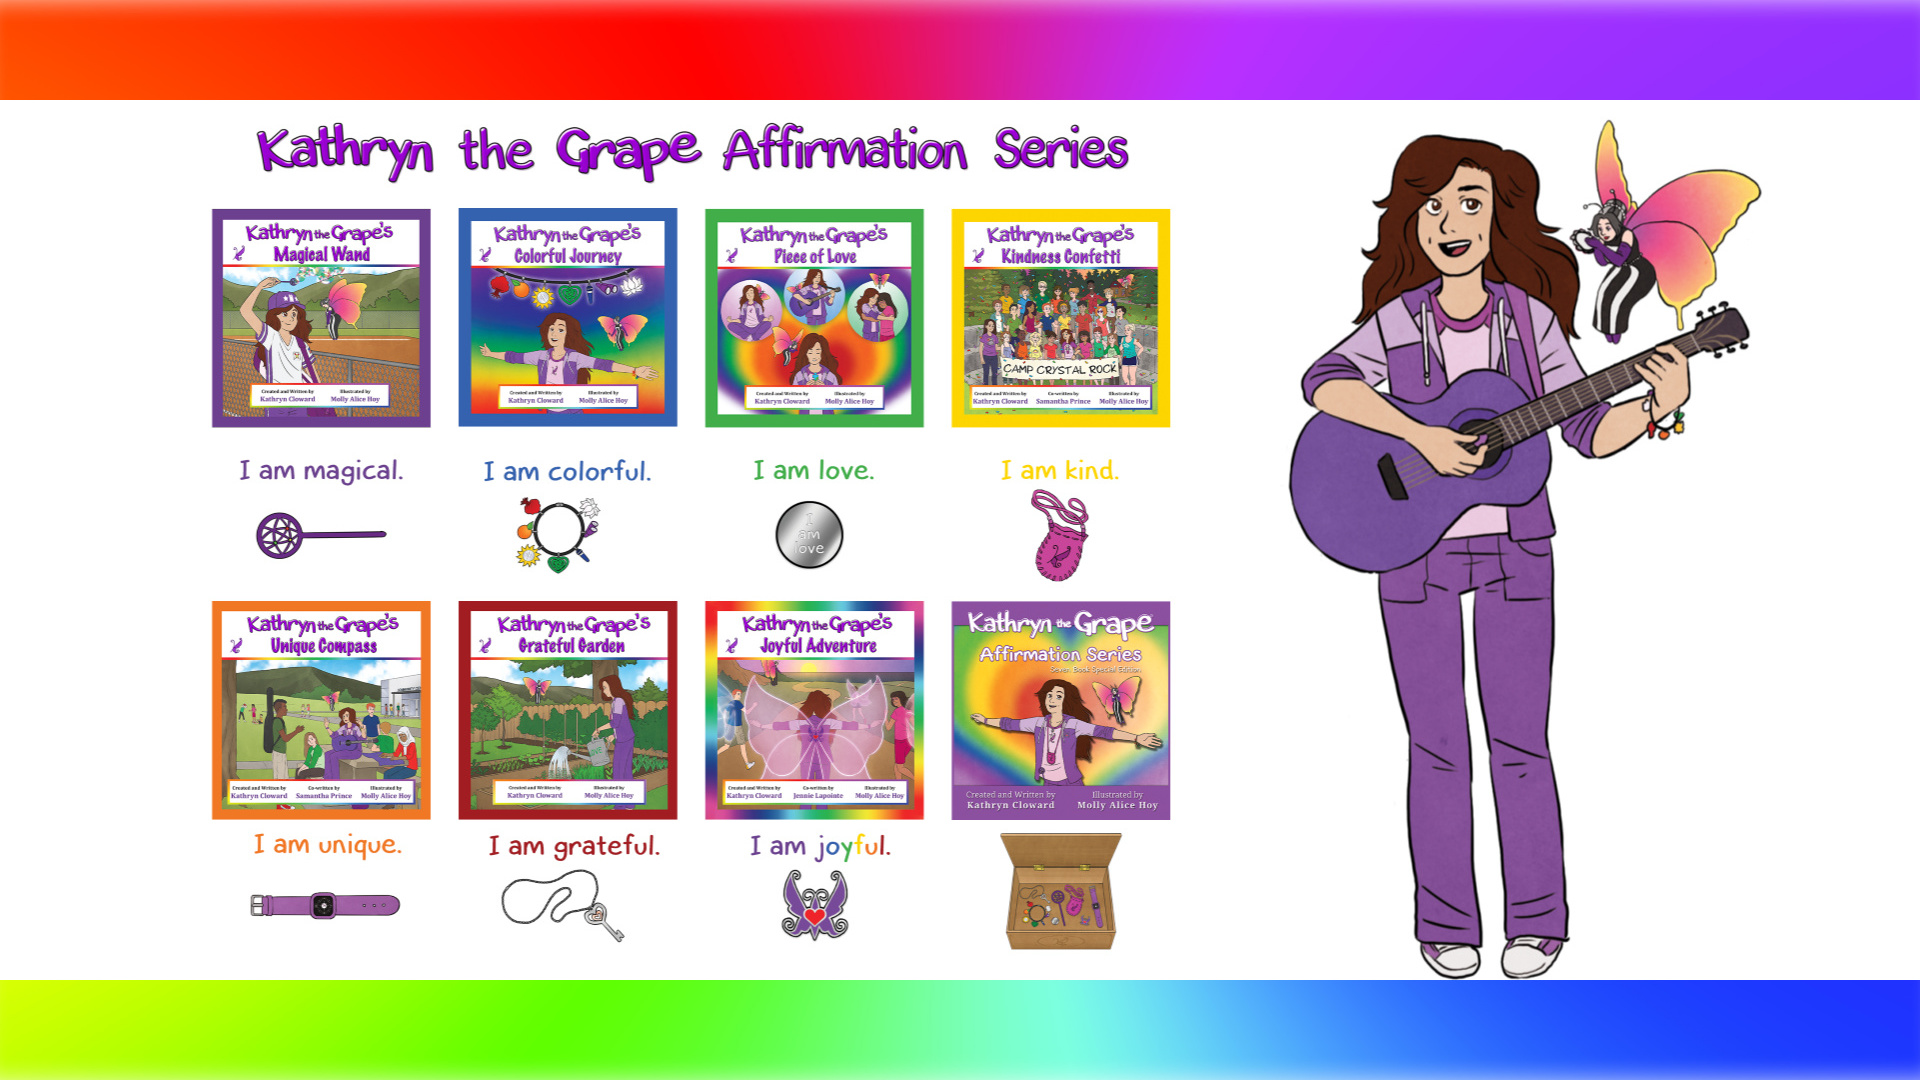 Kathryn the Grape Affirmation Series by Kathryn Cloward 1920 x 1080